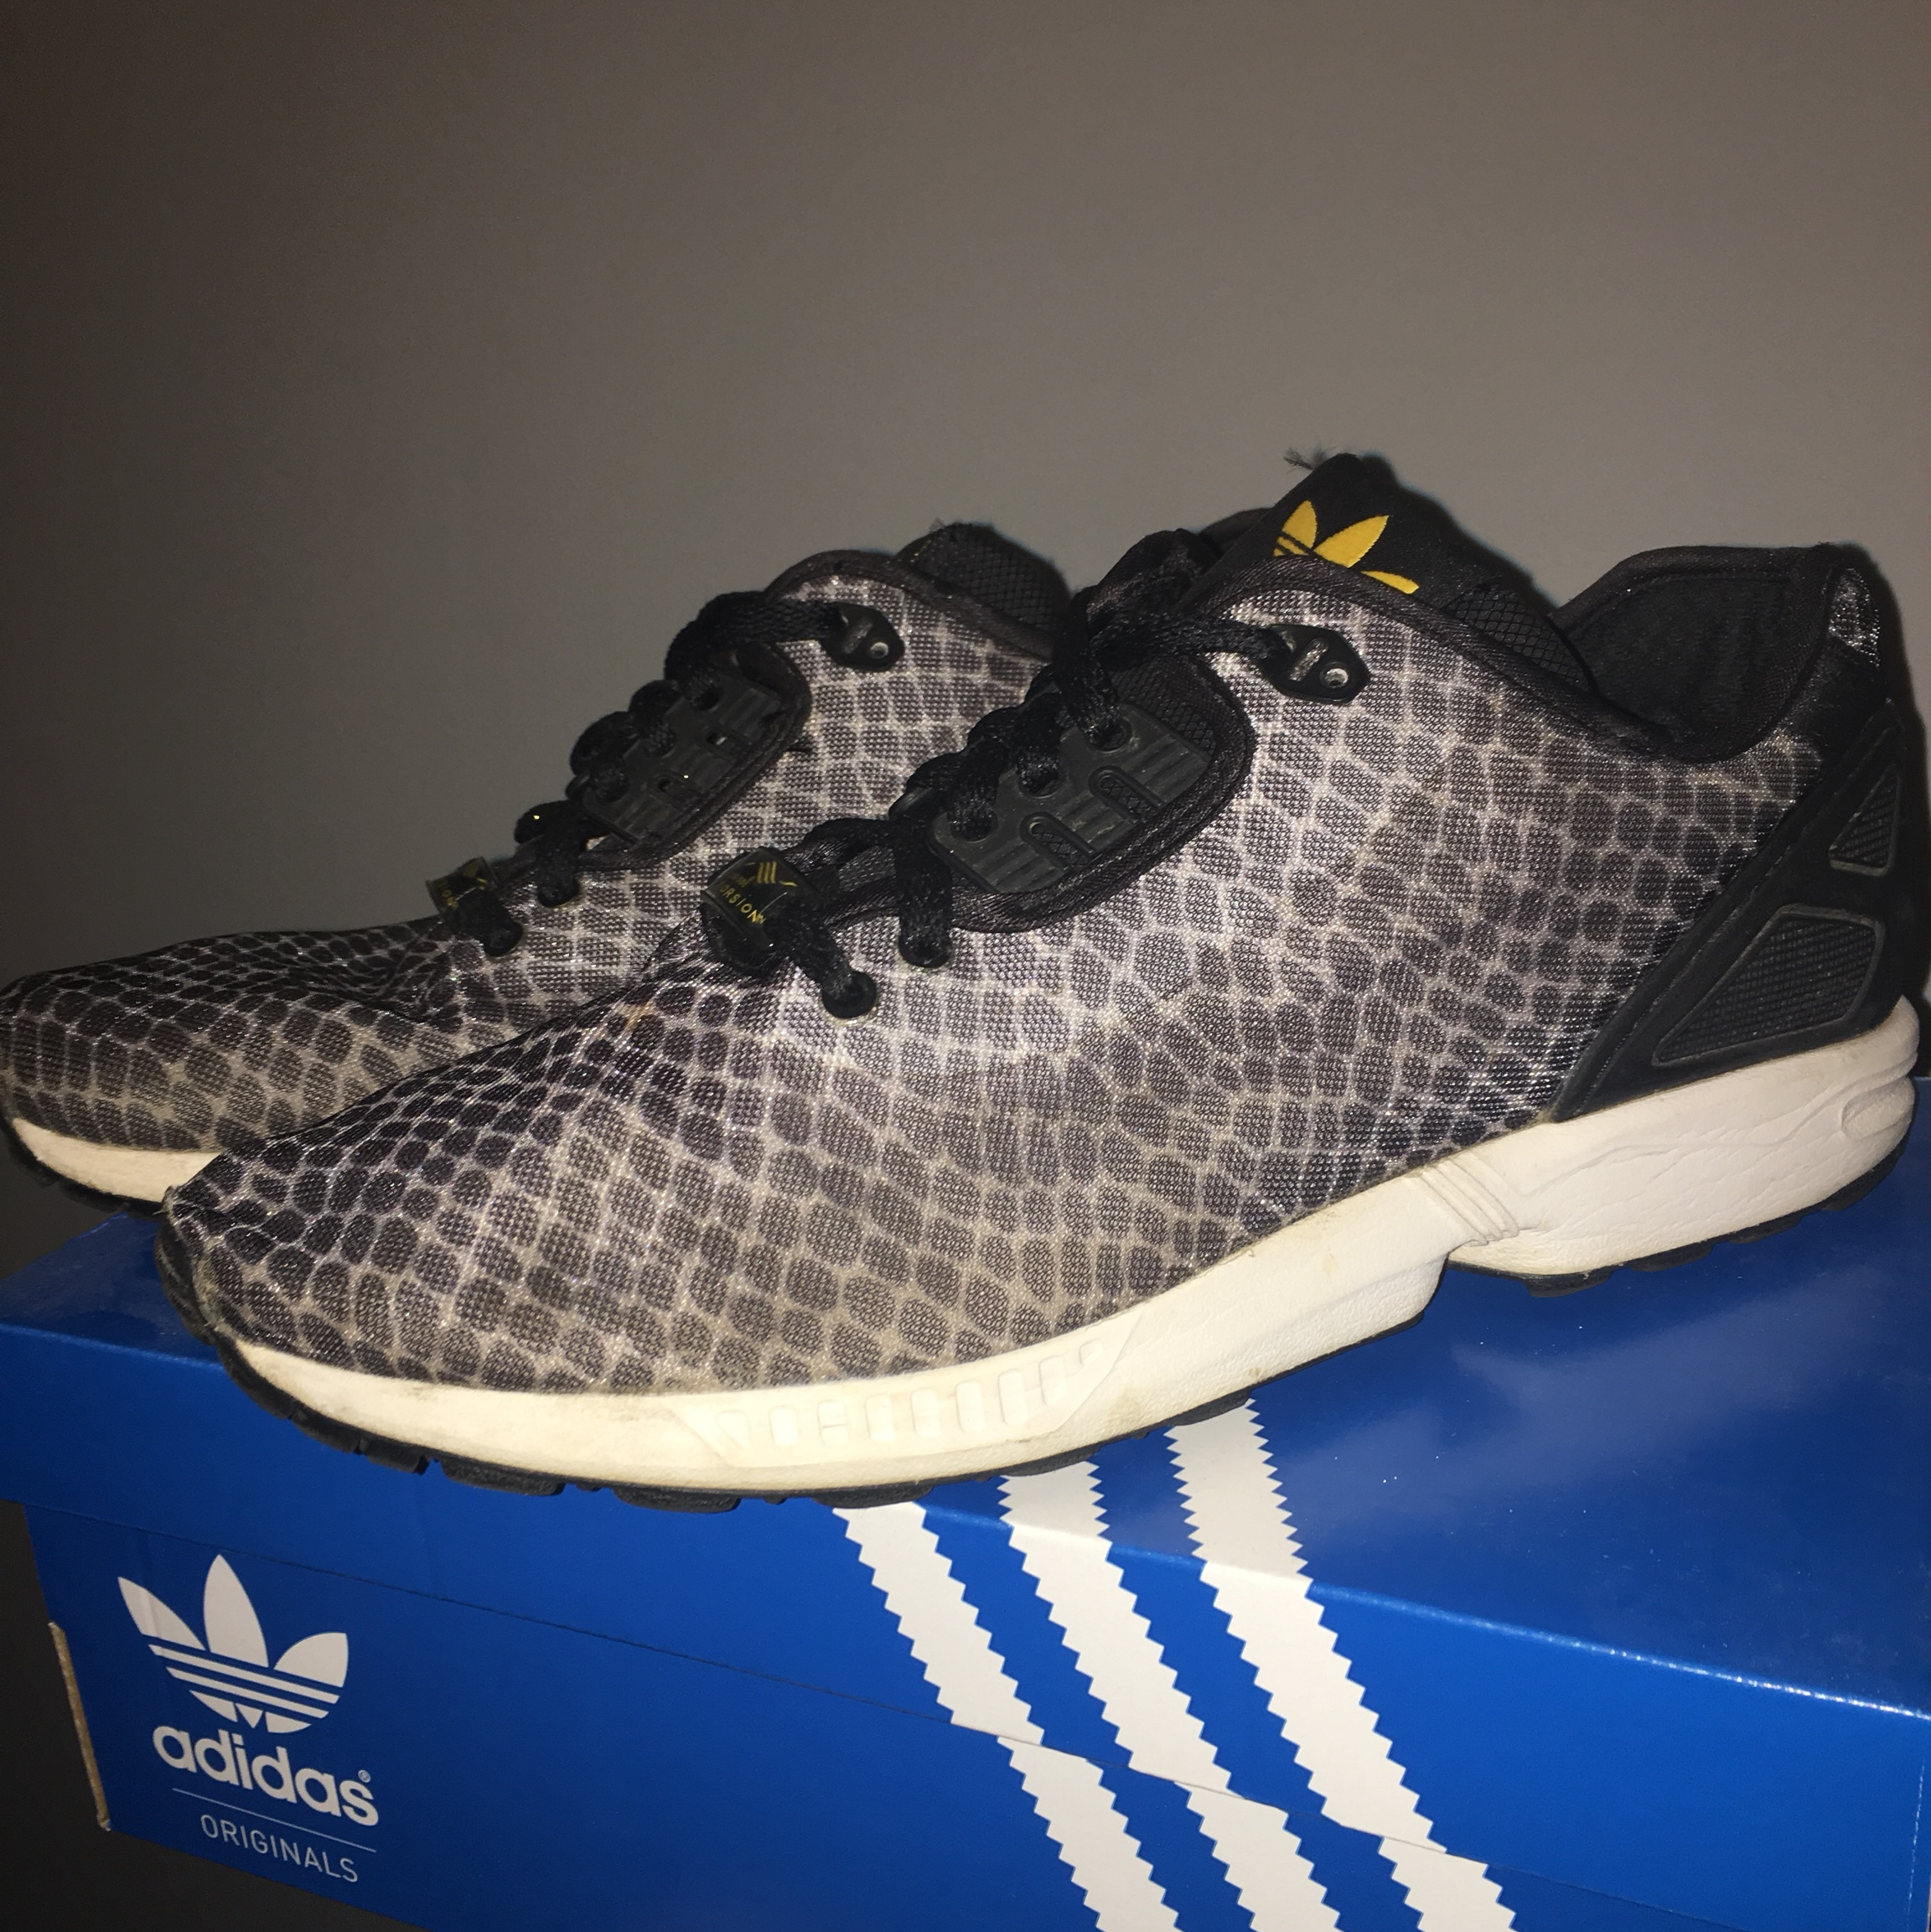 online retailer 6a408 803f6 Adidas ZX Flux Torsion Limited Edition Trainers... - Depop